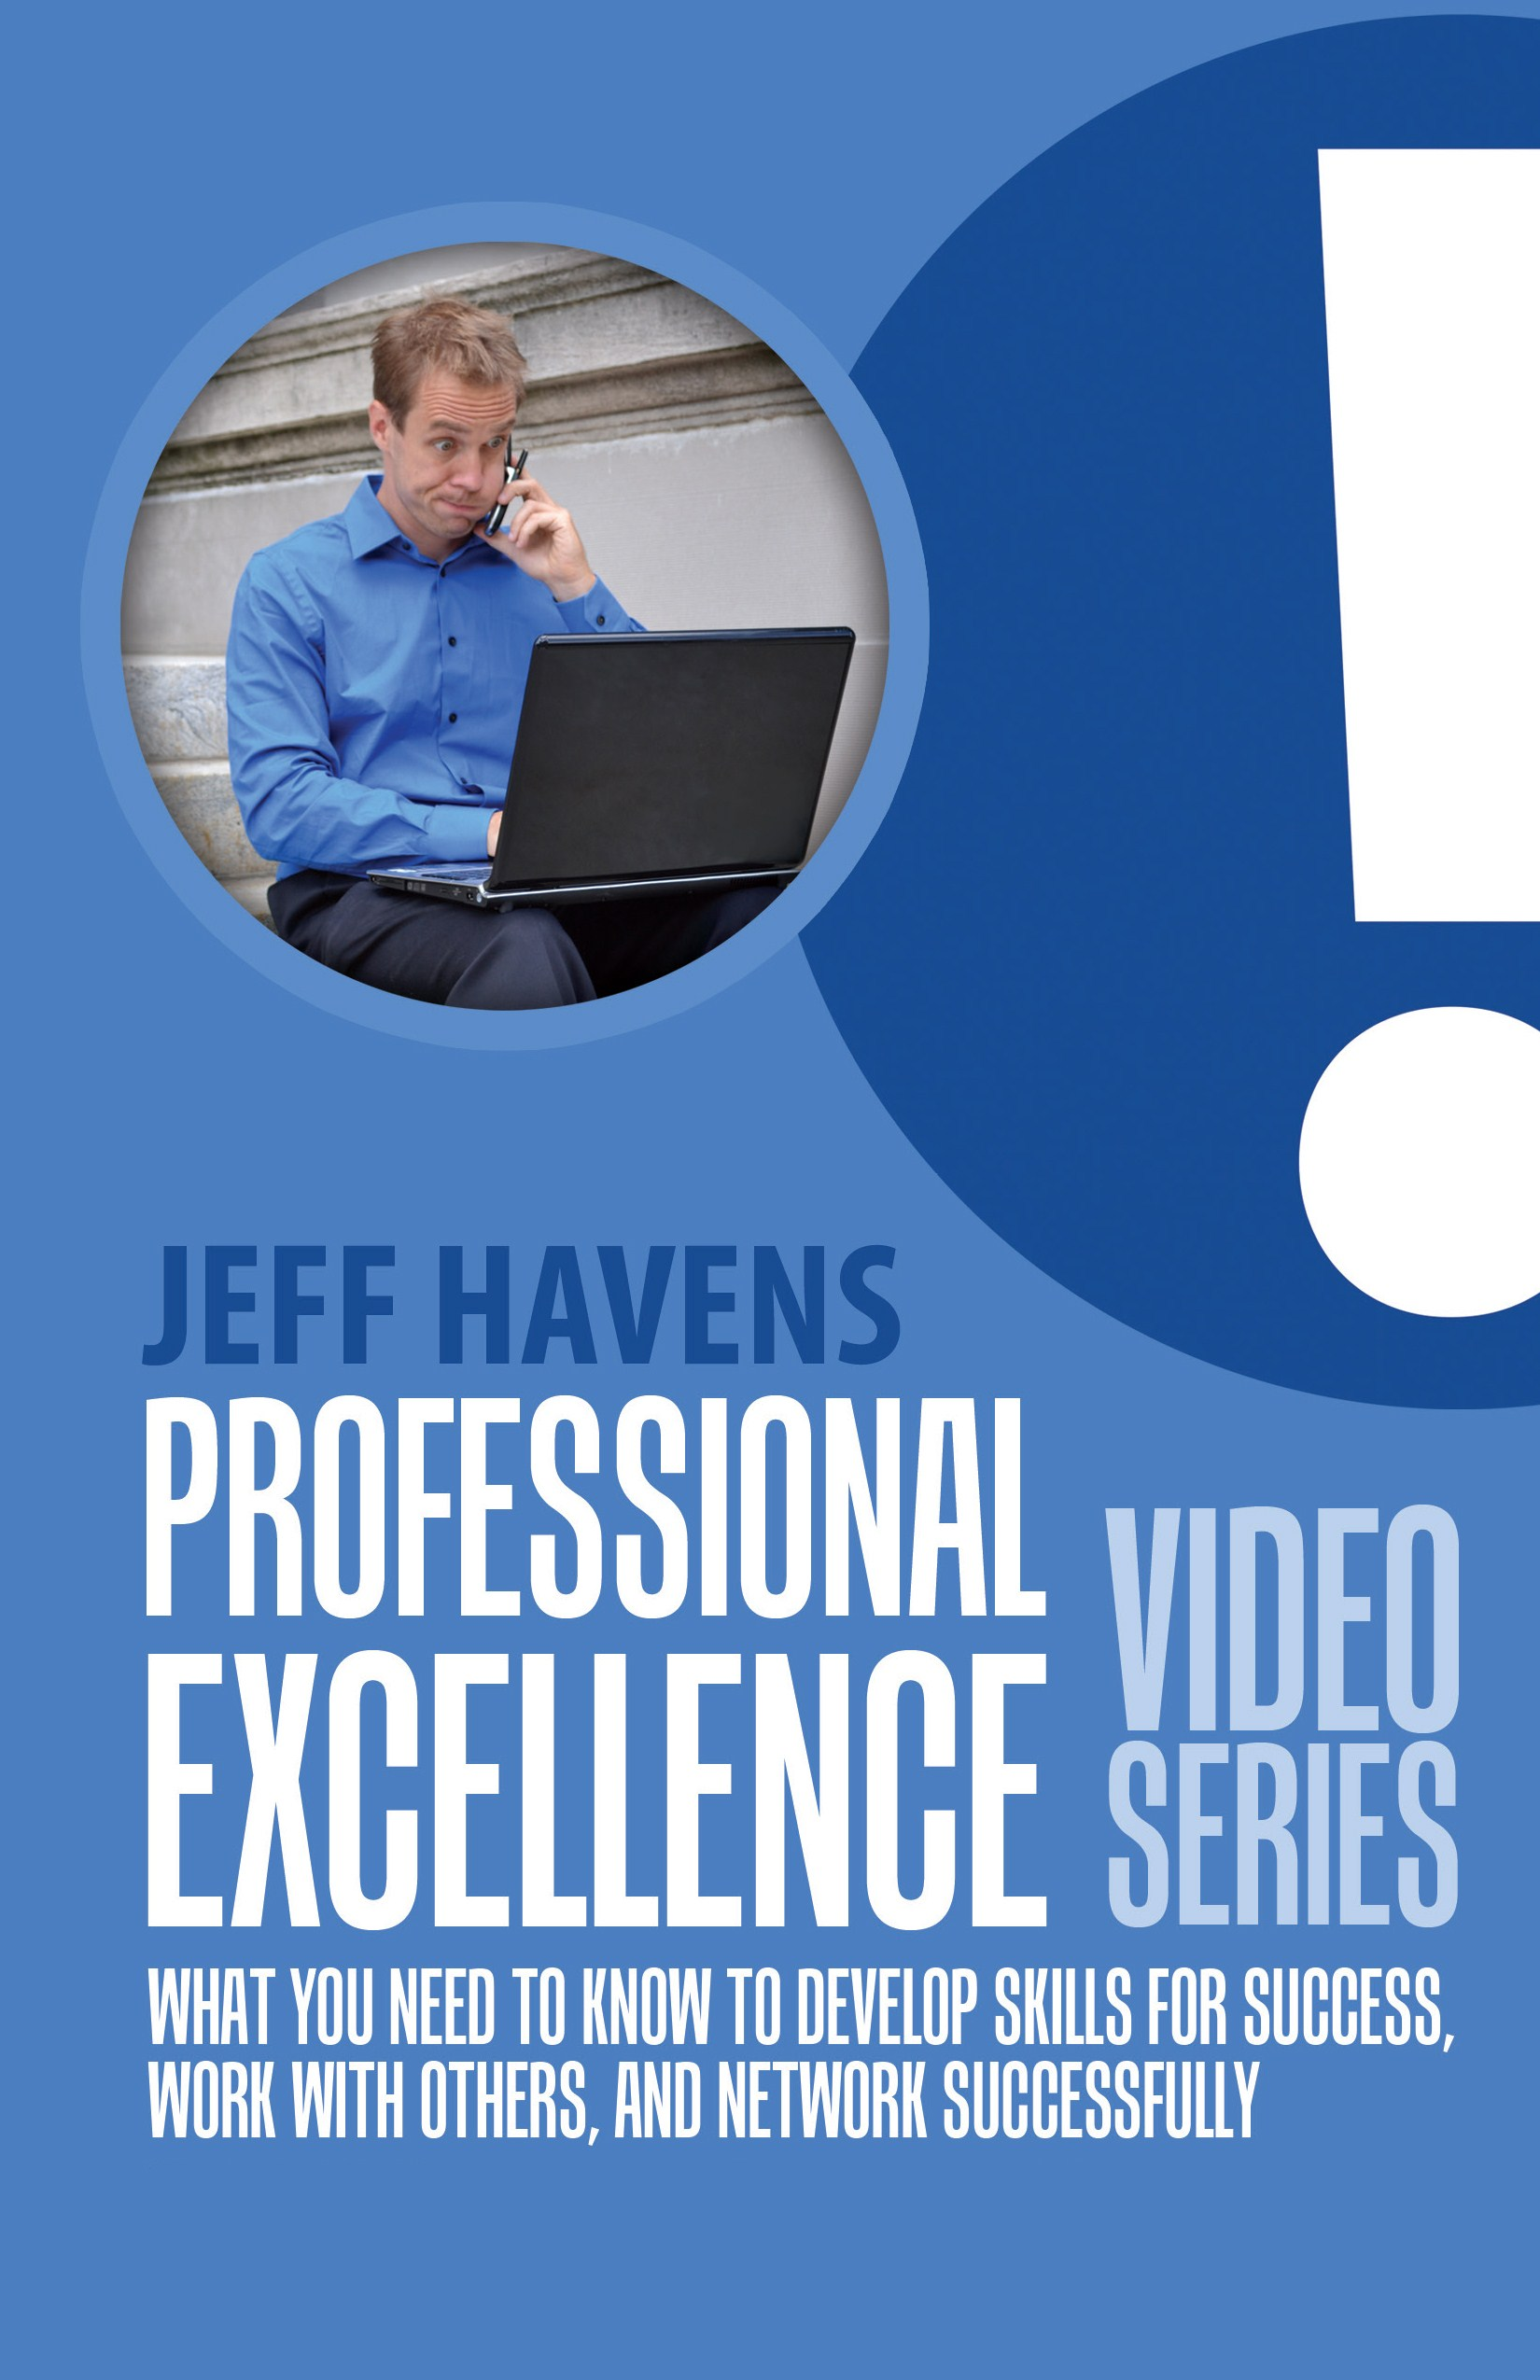 Professional Excellence Video Series: What You Need to Know to Develop Skills for Success, Work with Others, and Network Successfully